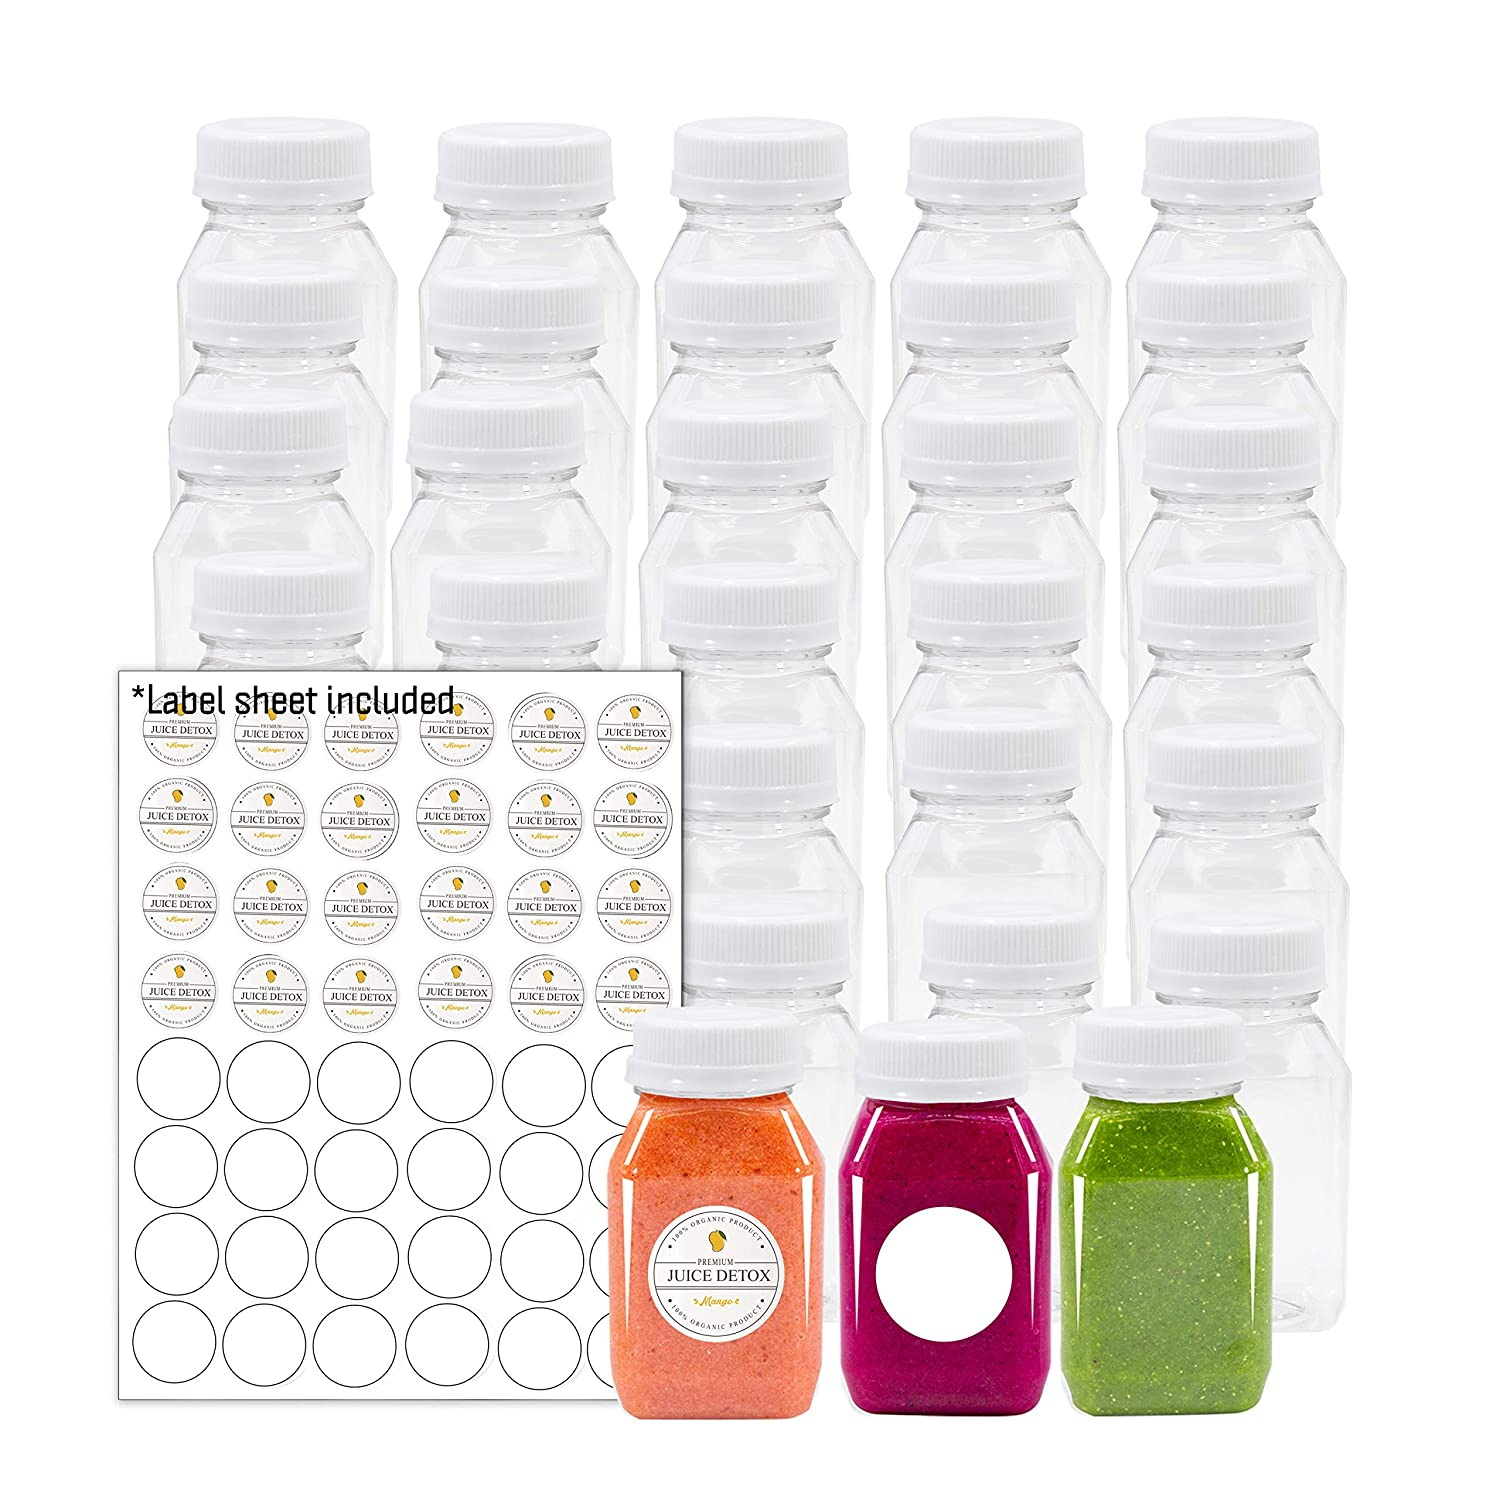 Empty PET Plastic Juice Bottles - Pack of 35 Reusable Clear Disposable Milk Bulk Containers with Labels and Tamper Evident Caps (4 OZ, White)